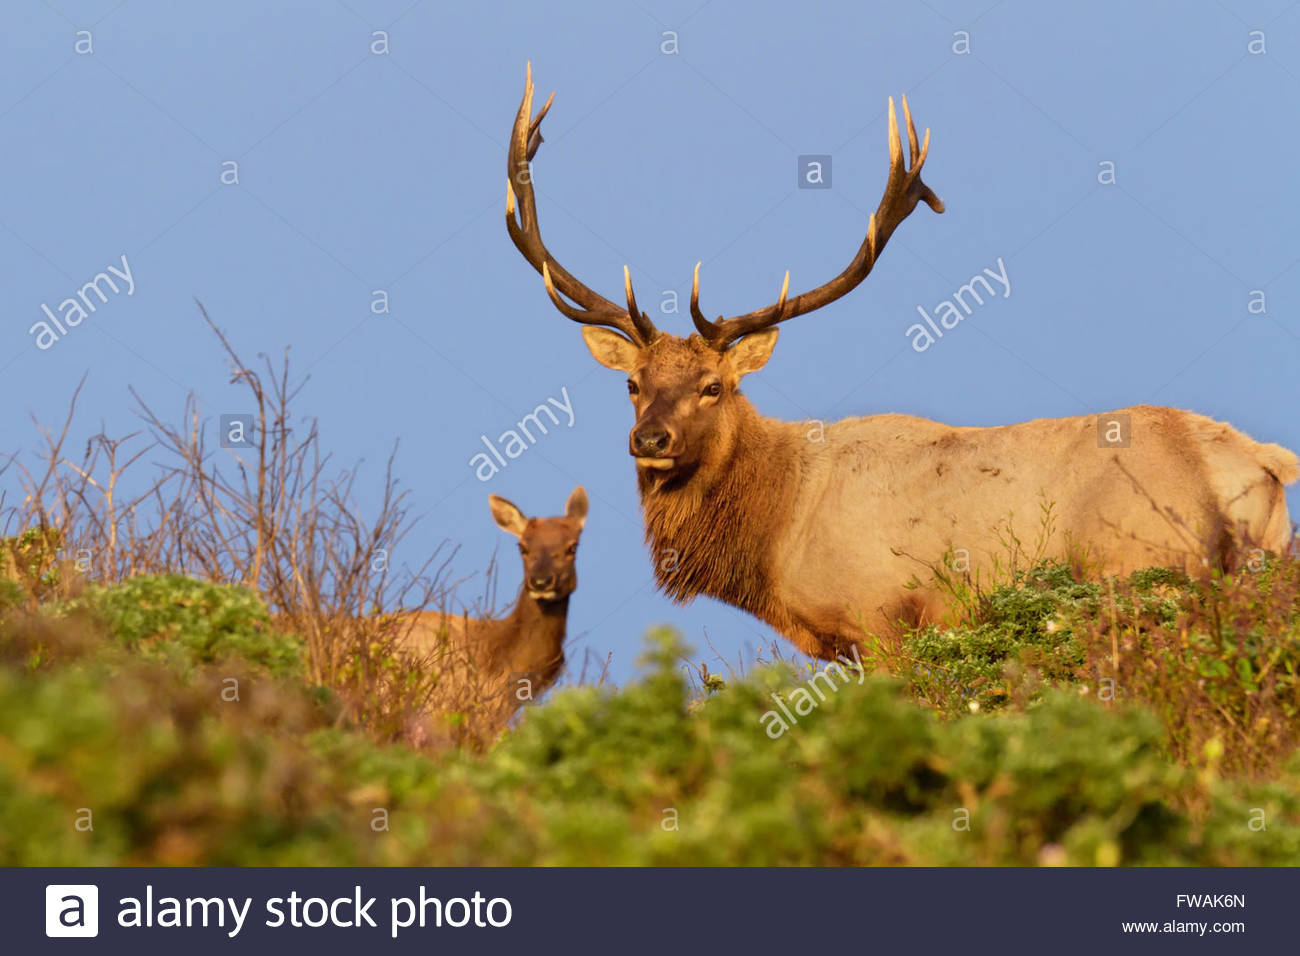 Macho y Hembra Tule Elk en permanente, Sunset Point Reyes National Seashore, CA Imagen De Stock